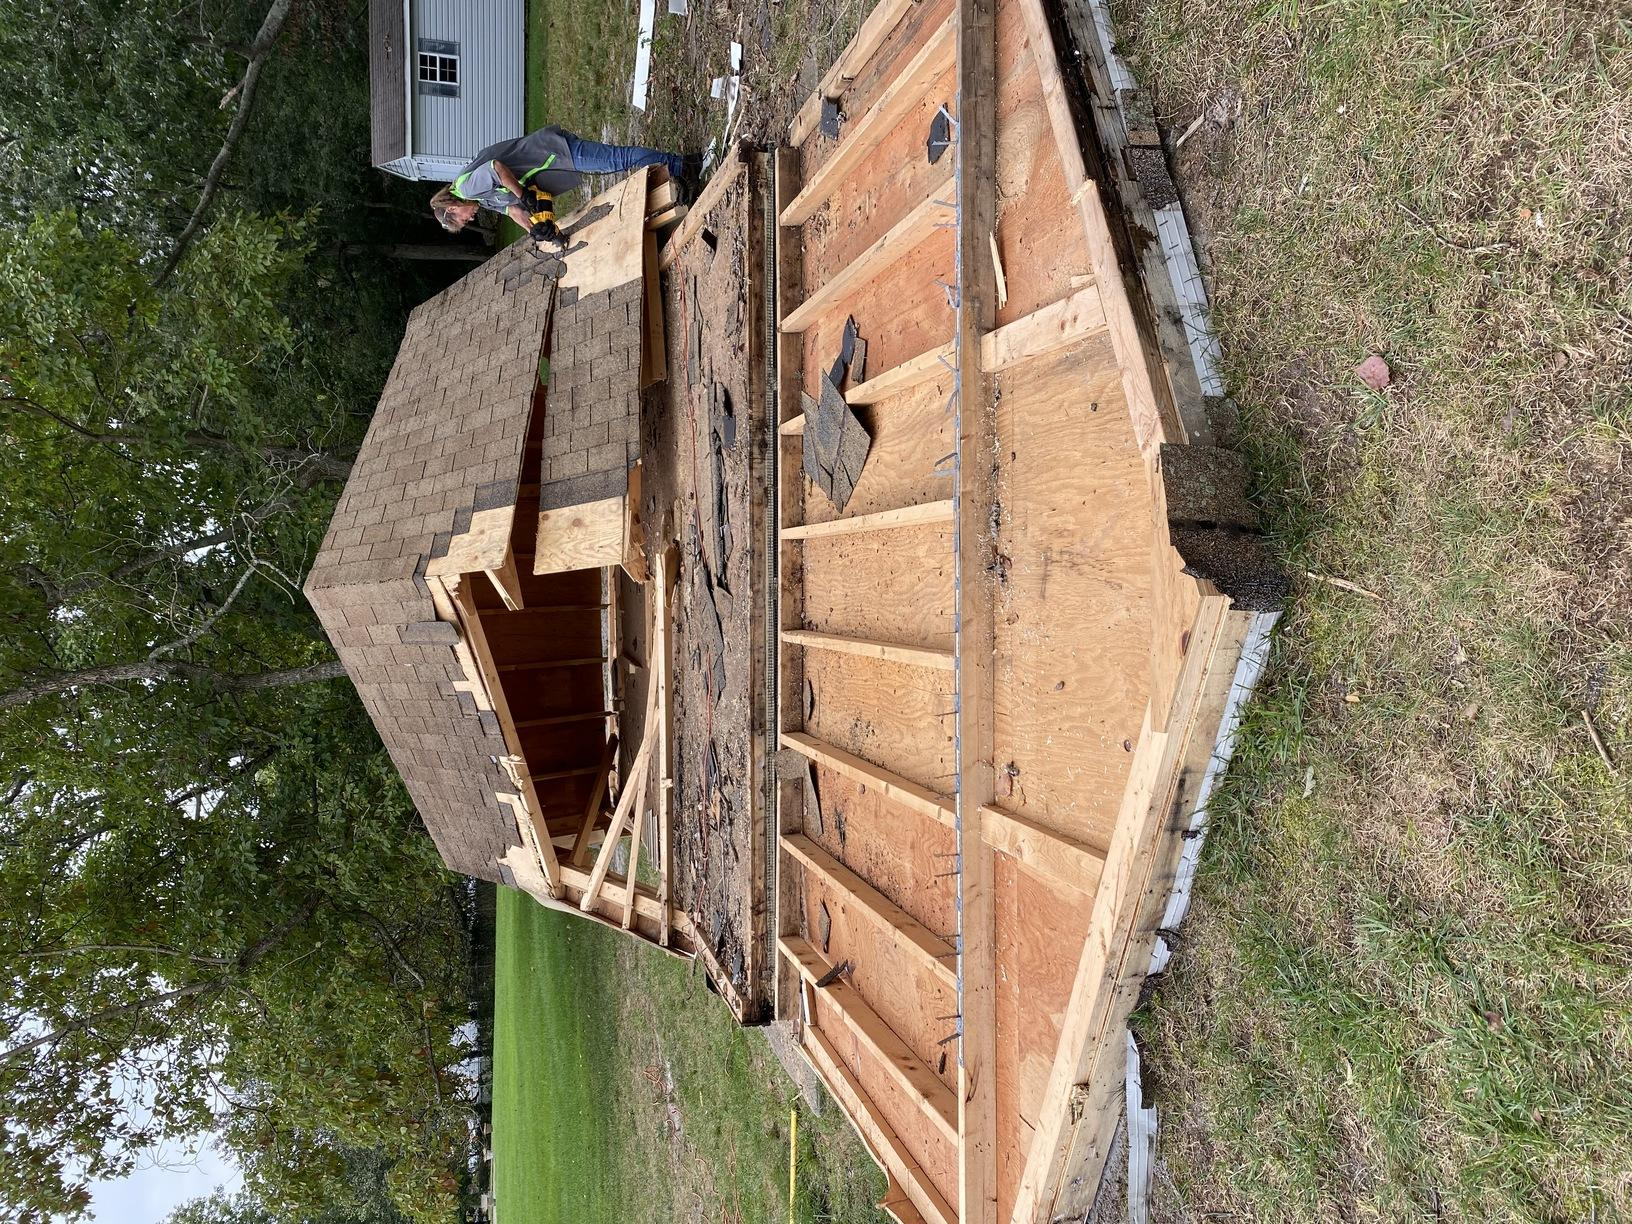 12x16 Shed, almost there!